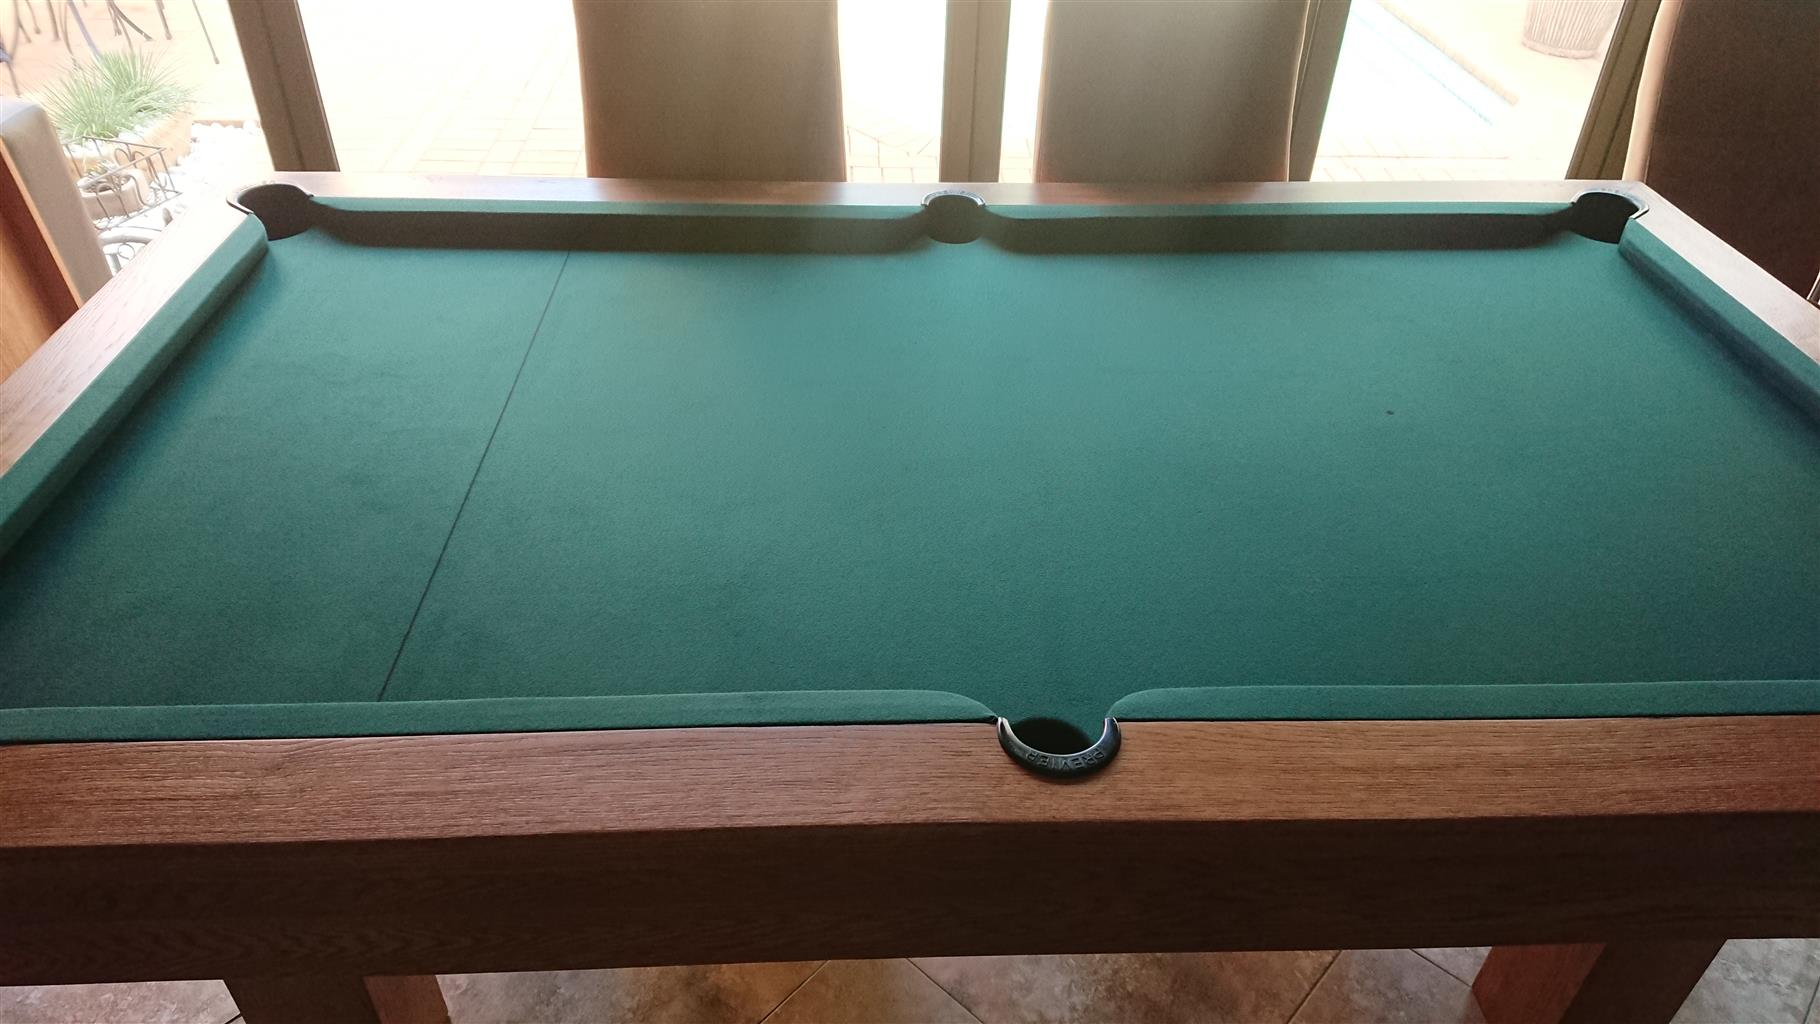 Bedroom suites, lounge set and pool table for sale together or seperatly